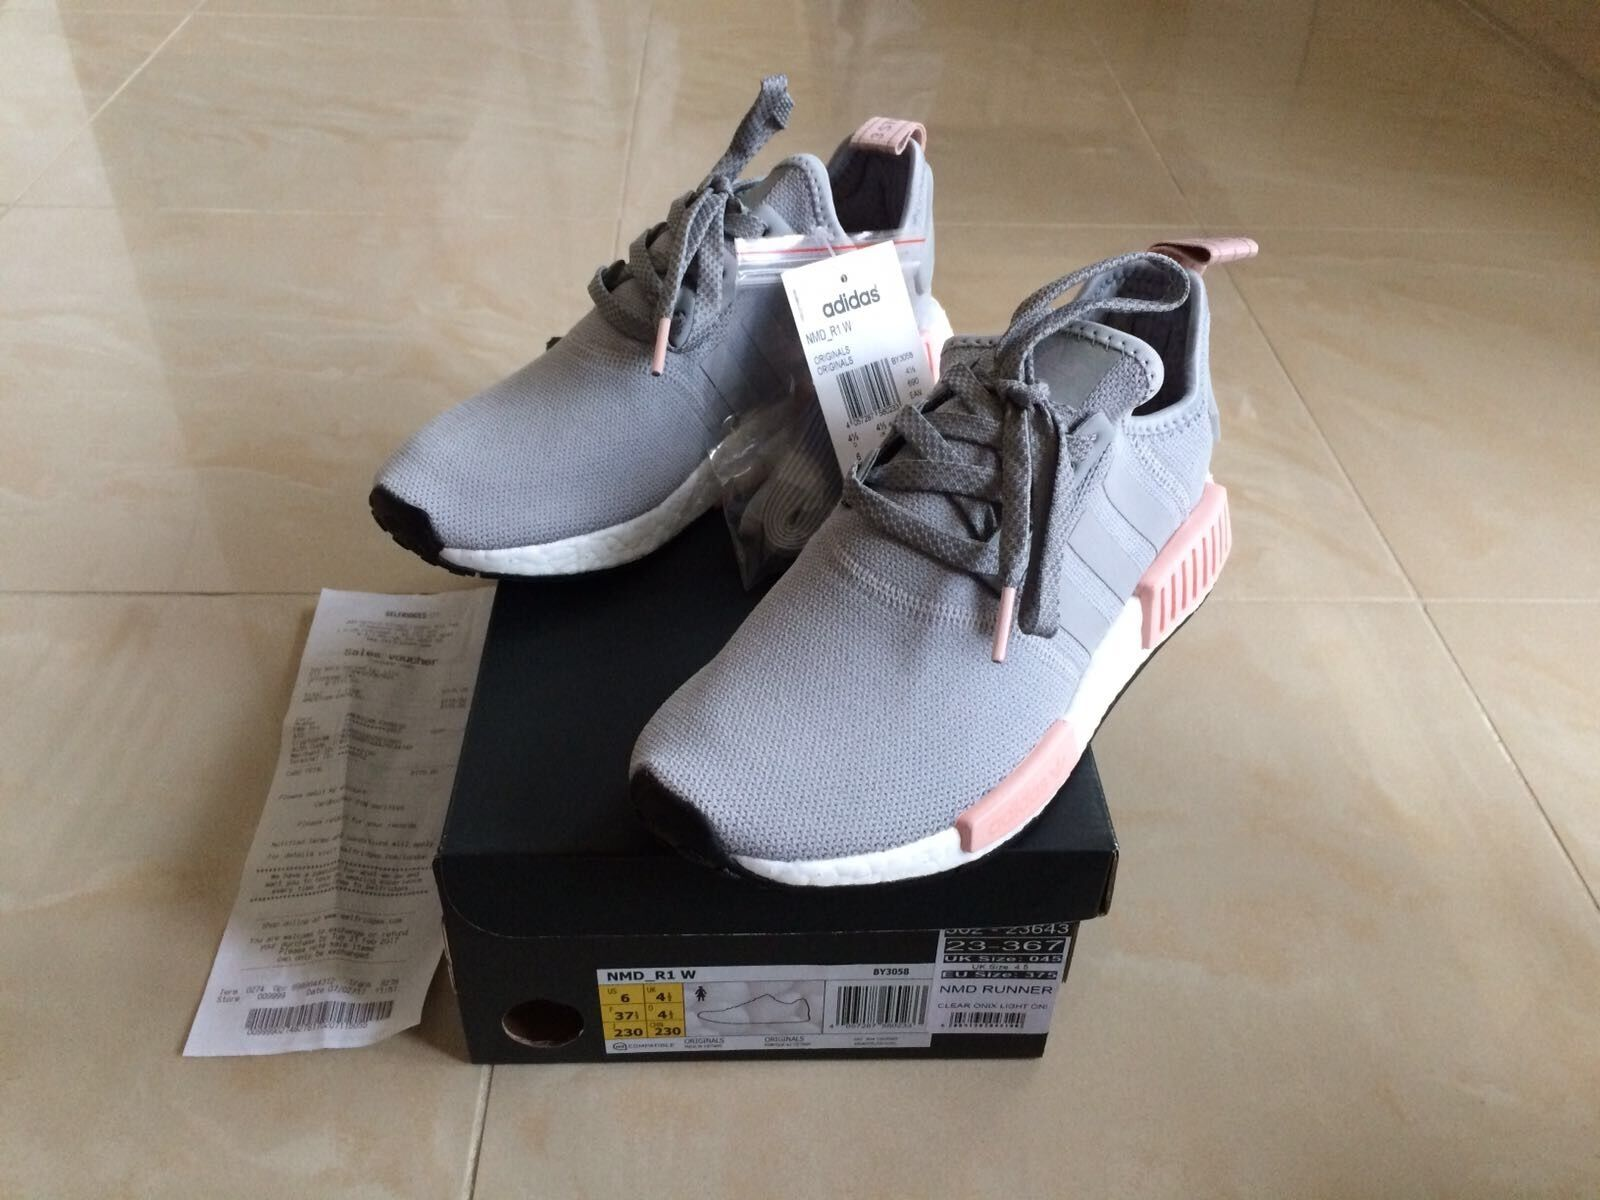 ADIDAS NMD R1 RUNNER RAW GREY PINK OFFICE OFFICE OFFICE EXCLUSIVE ALL SIZES 4 5 6 7 8 9 073bbc